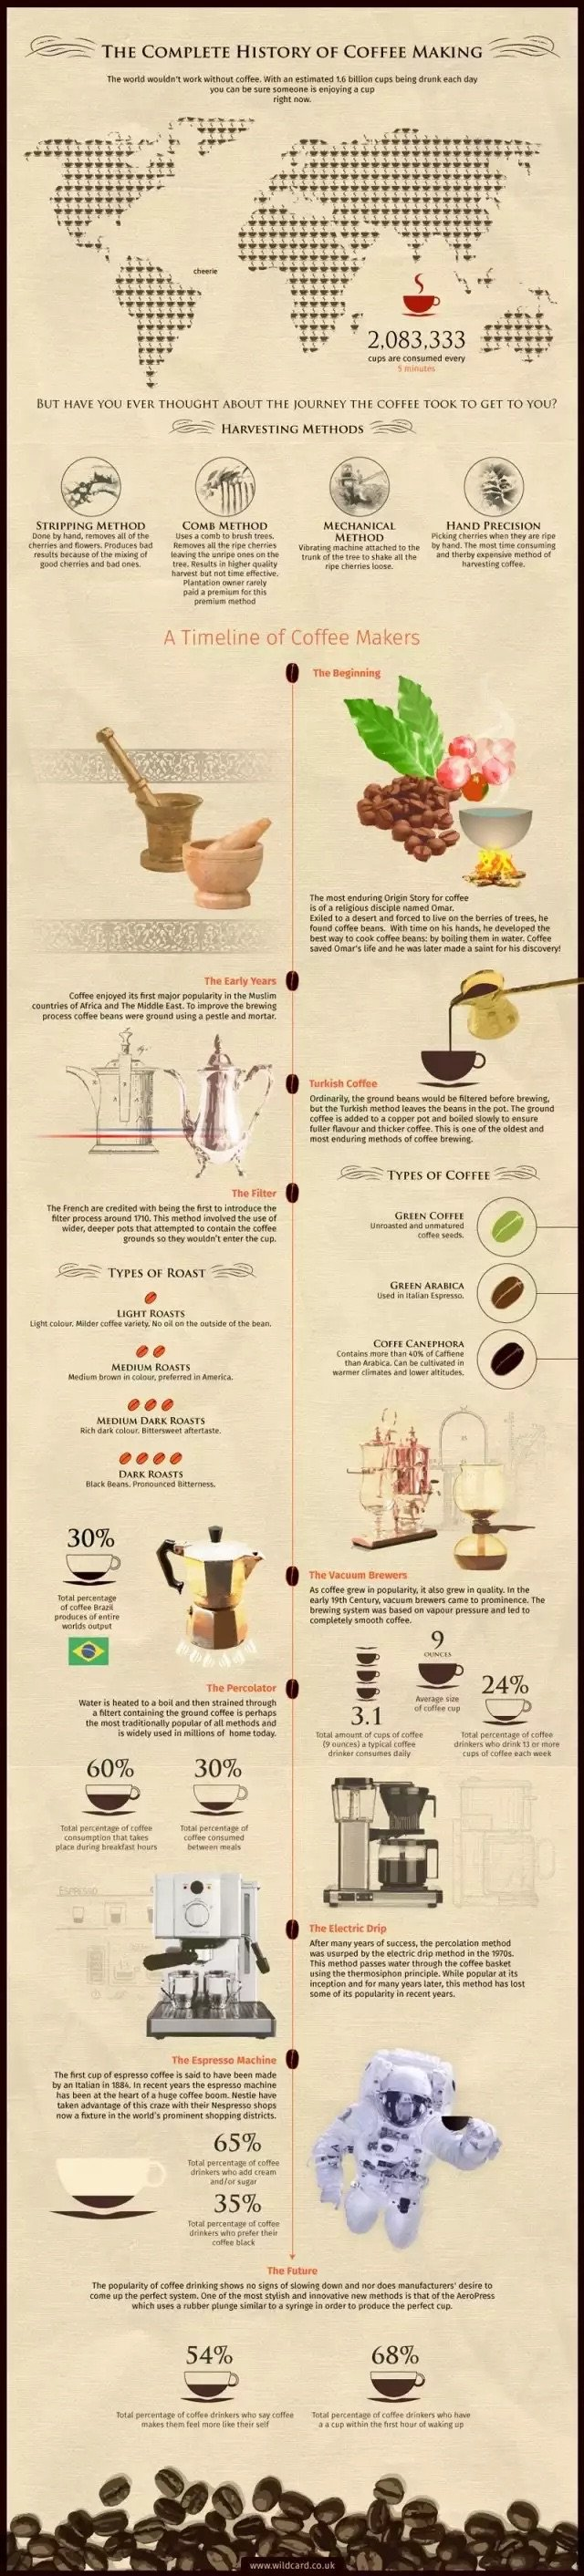 The historical timeline of coffee #Infographic